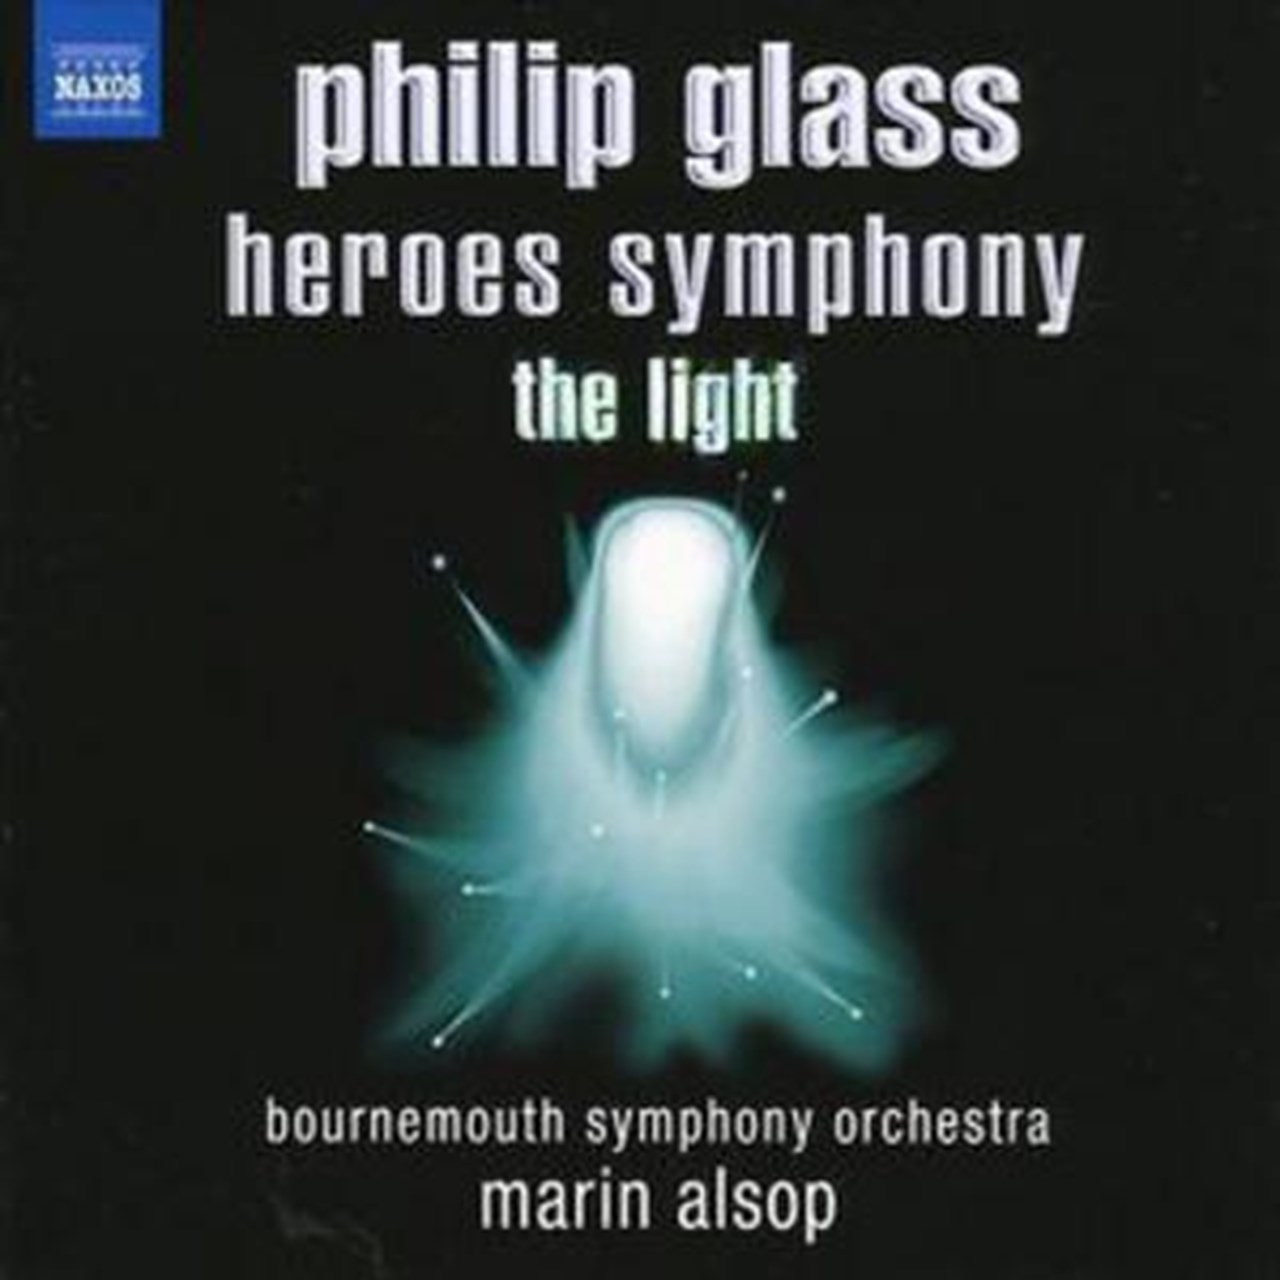 Heroes Symphony, the Light (Alsop, Bournemouth So) - 1